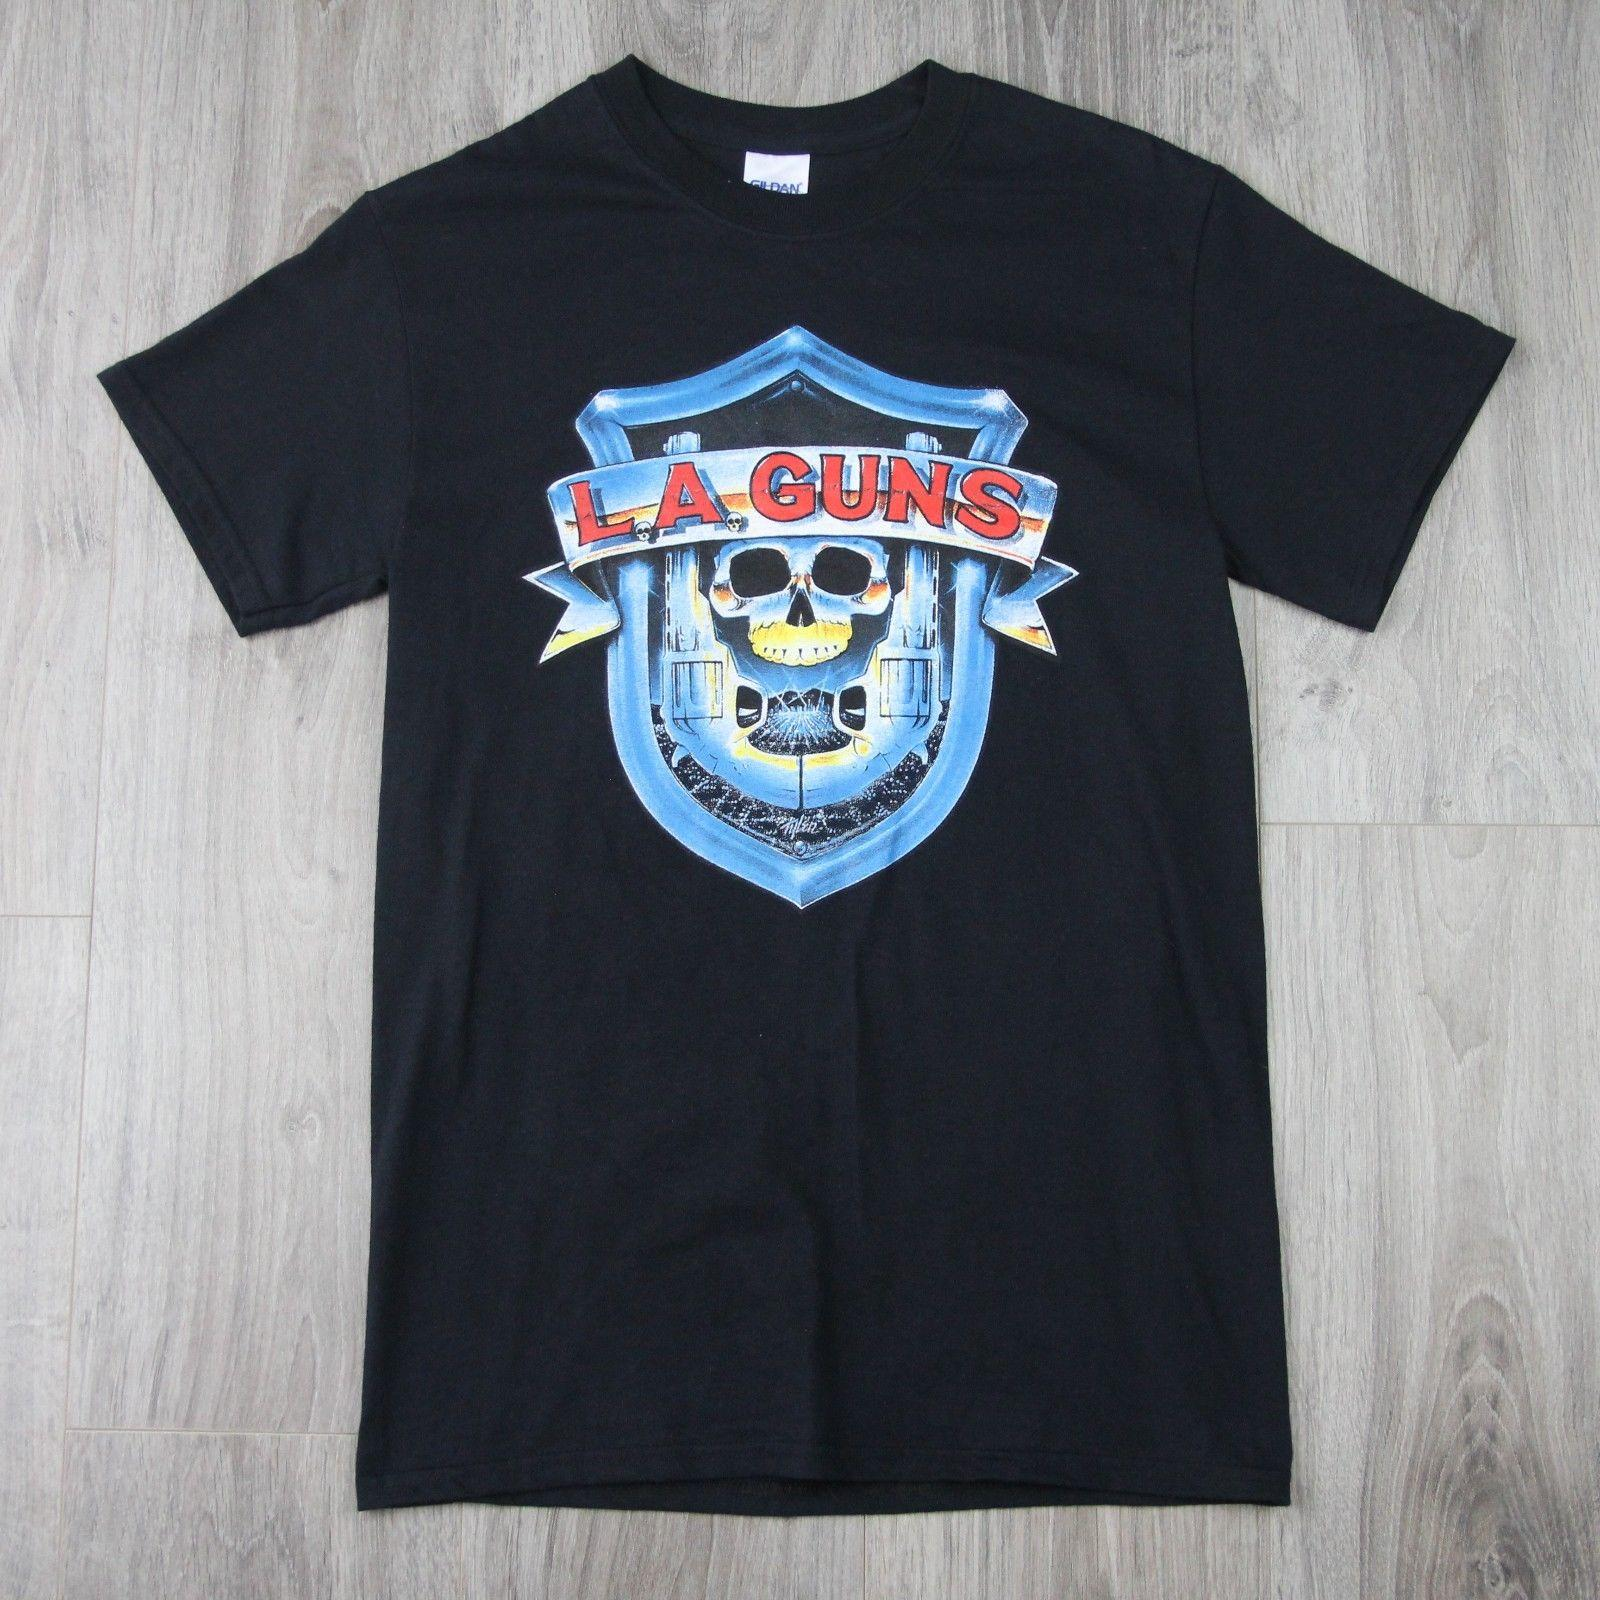 f4f7177b0b Mens Vintage LA Guns Hollywood Forever Rock Tee Band 2012 S Album Tour  HeavyFunny free shipping Unisex Casual top